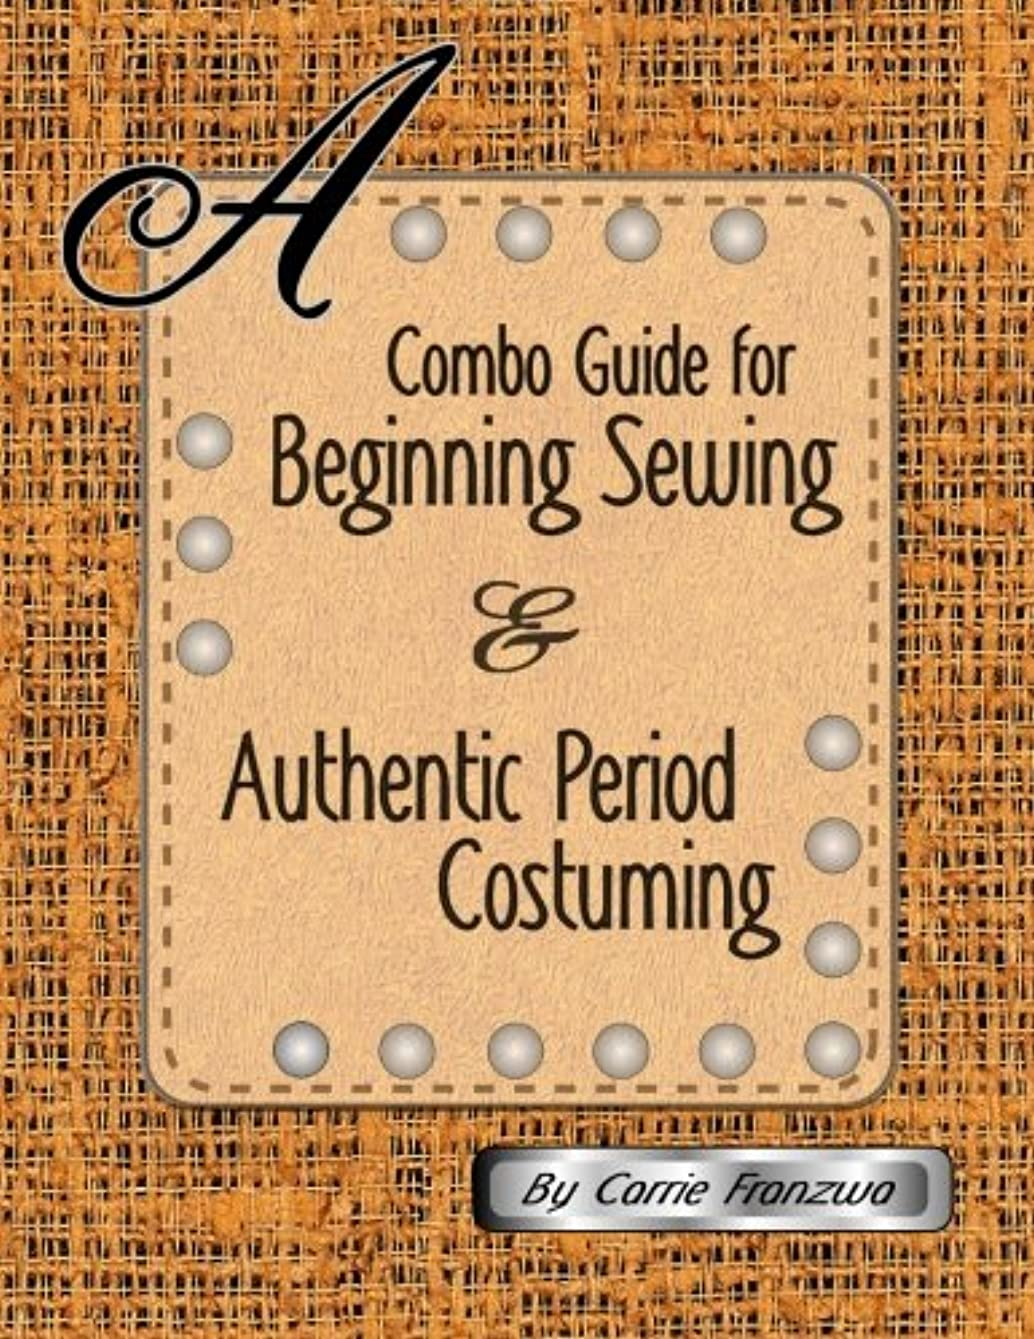 A Combo Guide for Beginning Sewing and Authentic Period Costuming ulkfhy989283